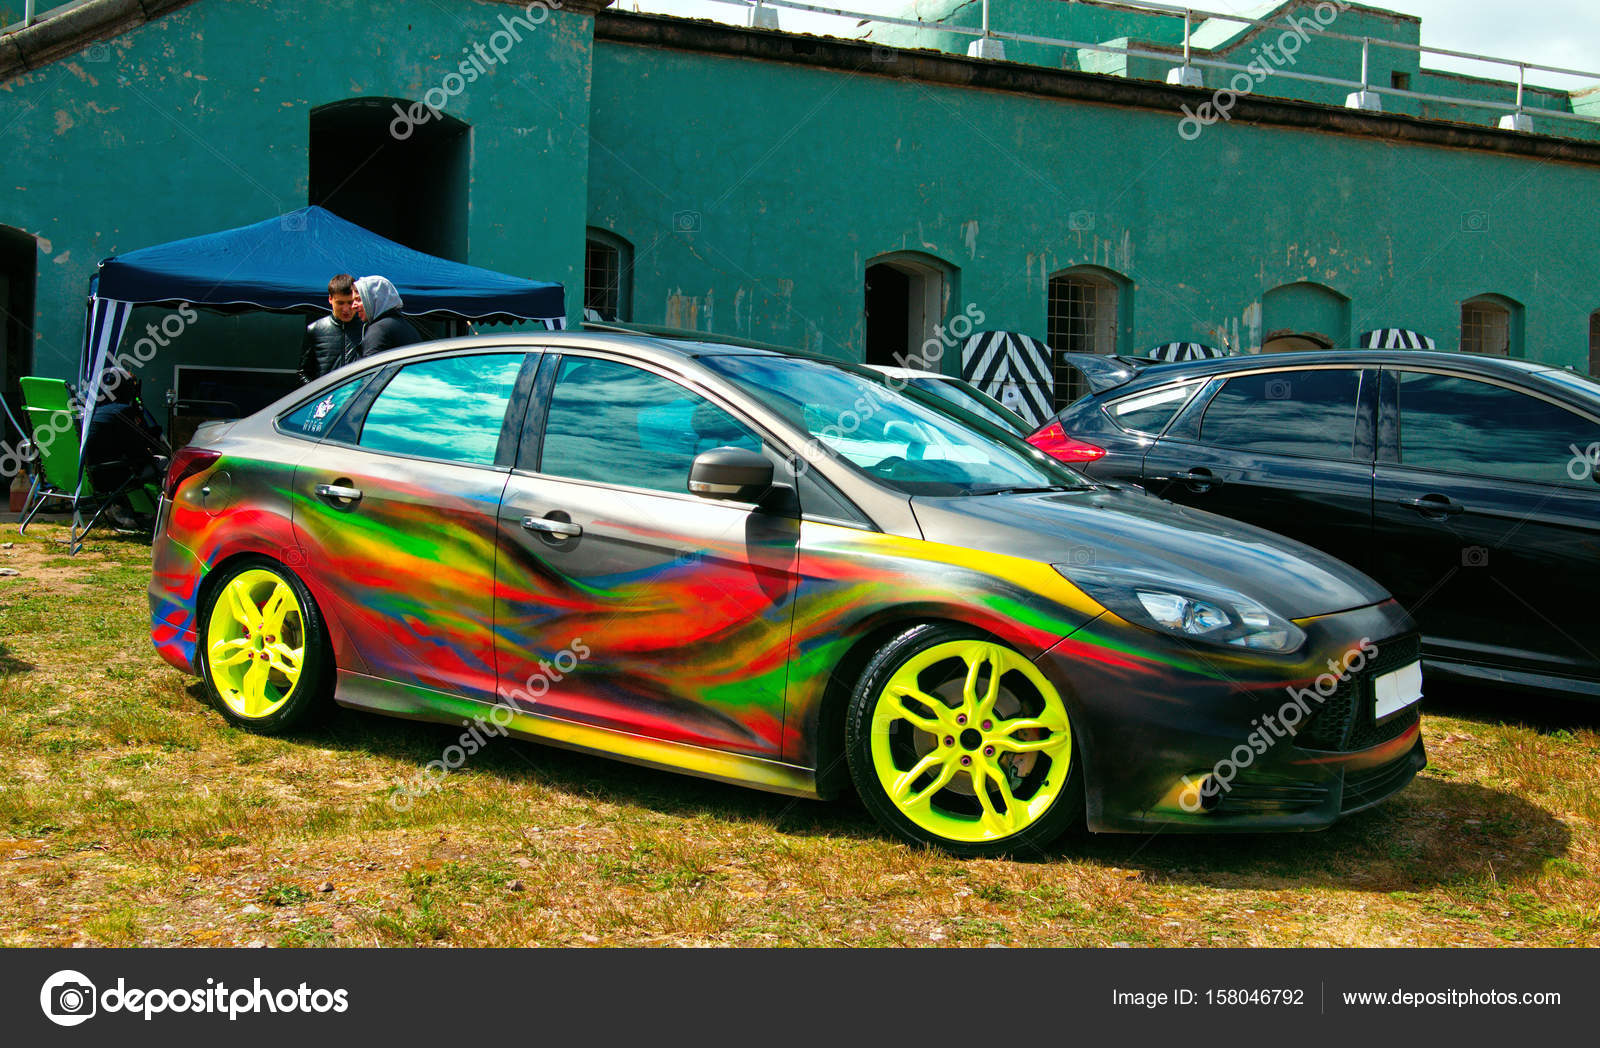 Voiture tuning am ricaine photo ditoriale olegmirabo - Voiture tuning images ...